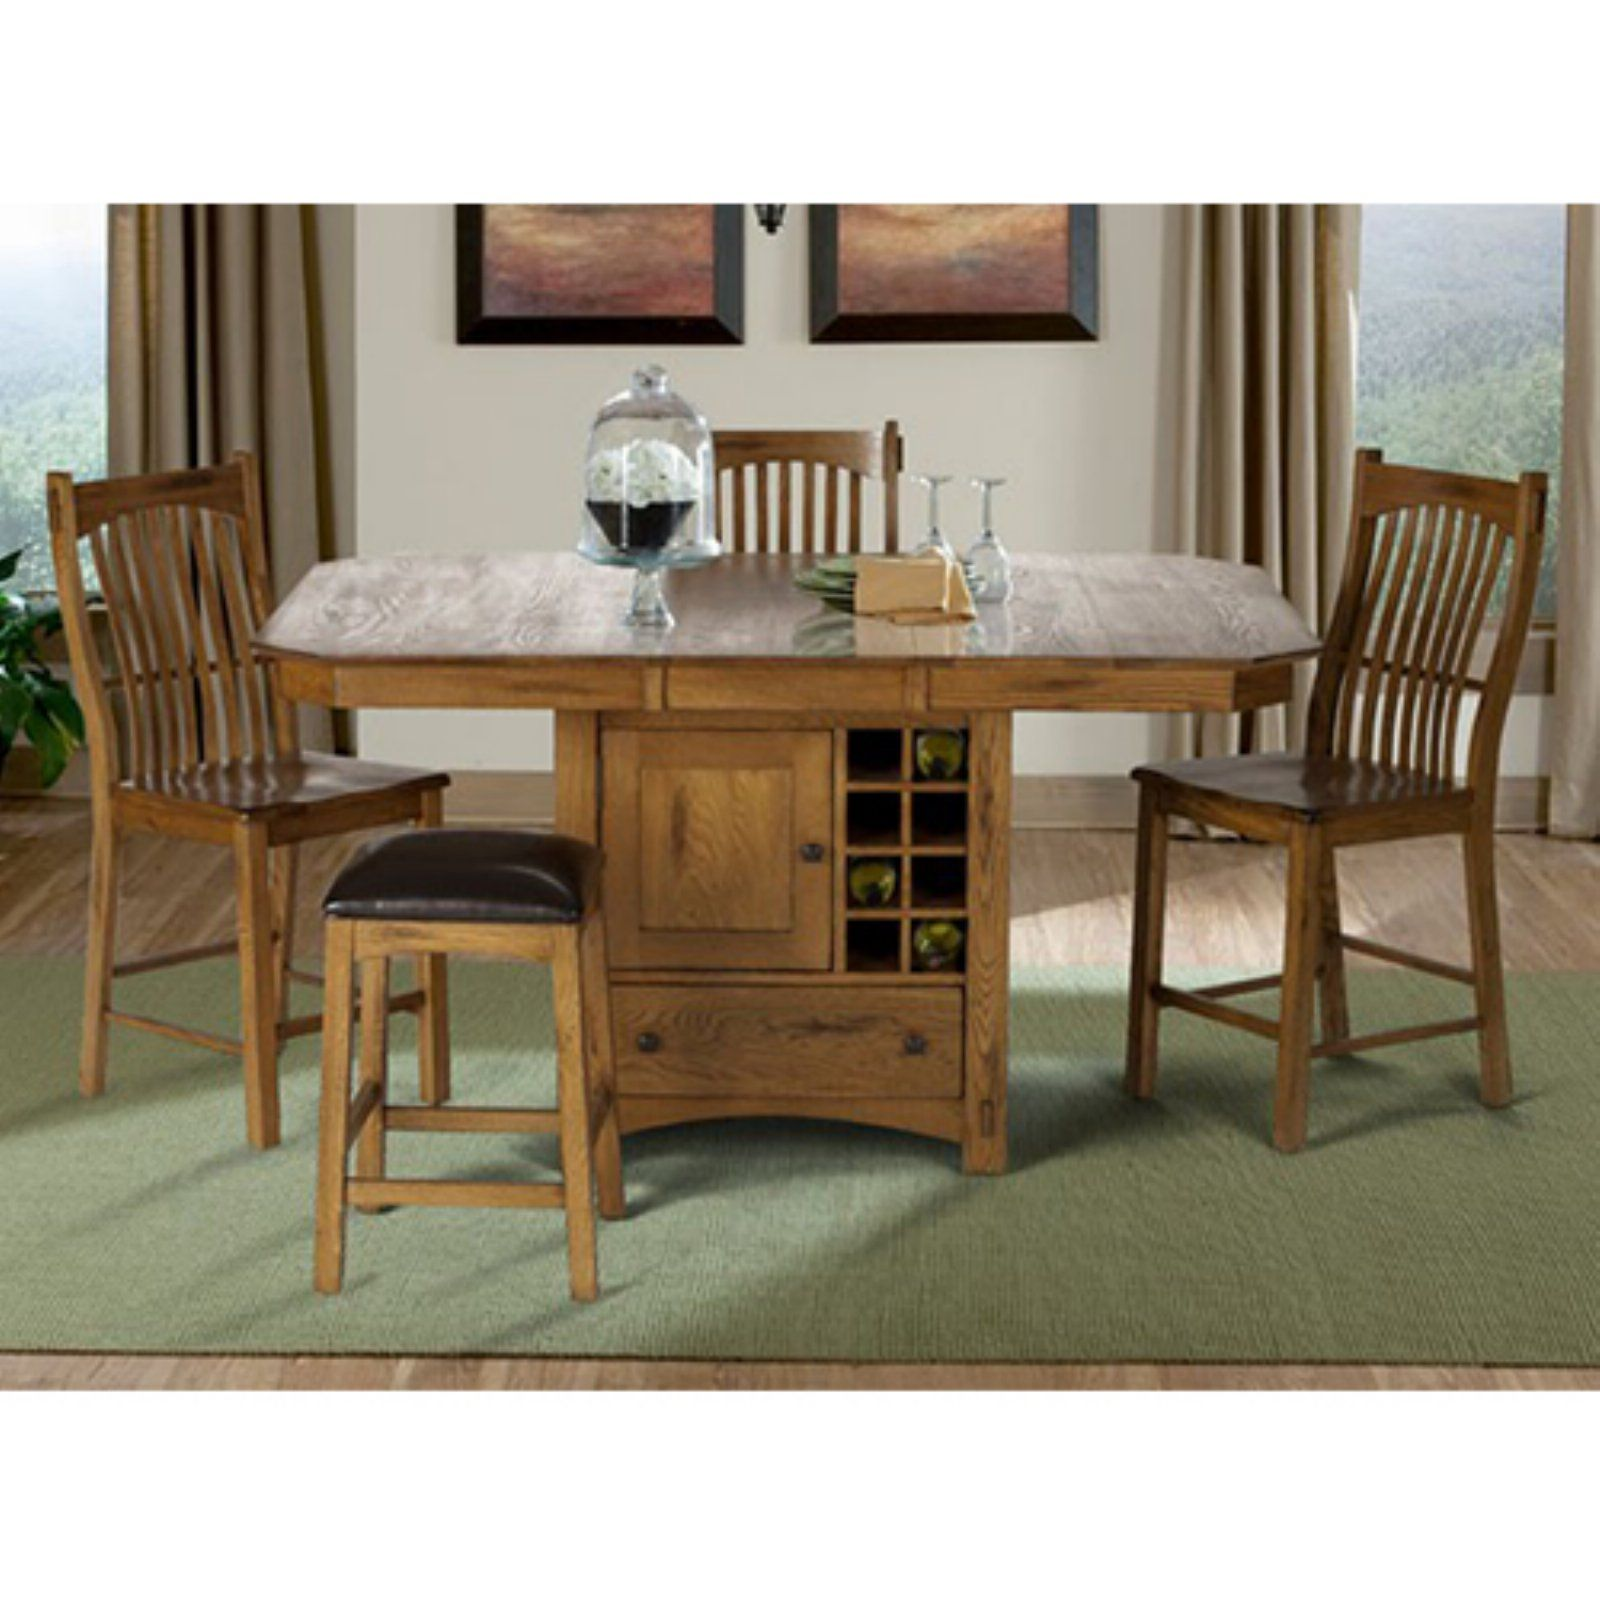 A America Laurelhurst Wine Storage Counter Height Dining Table